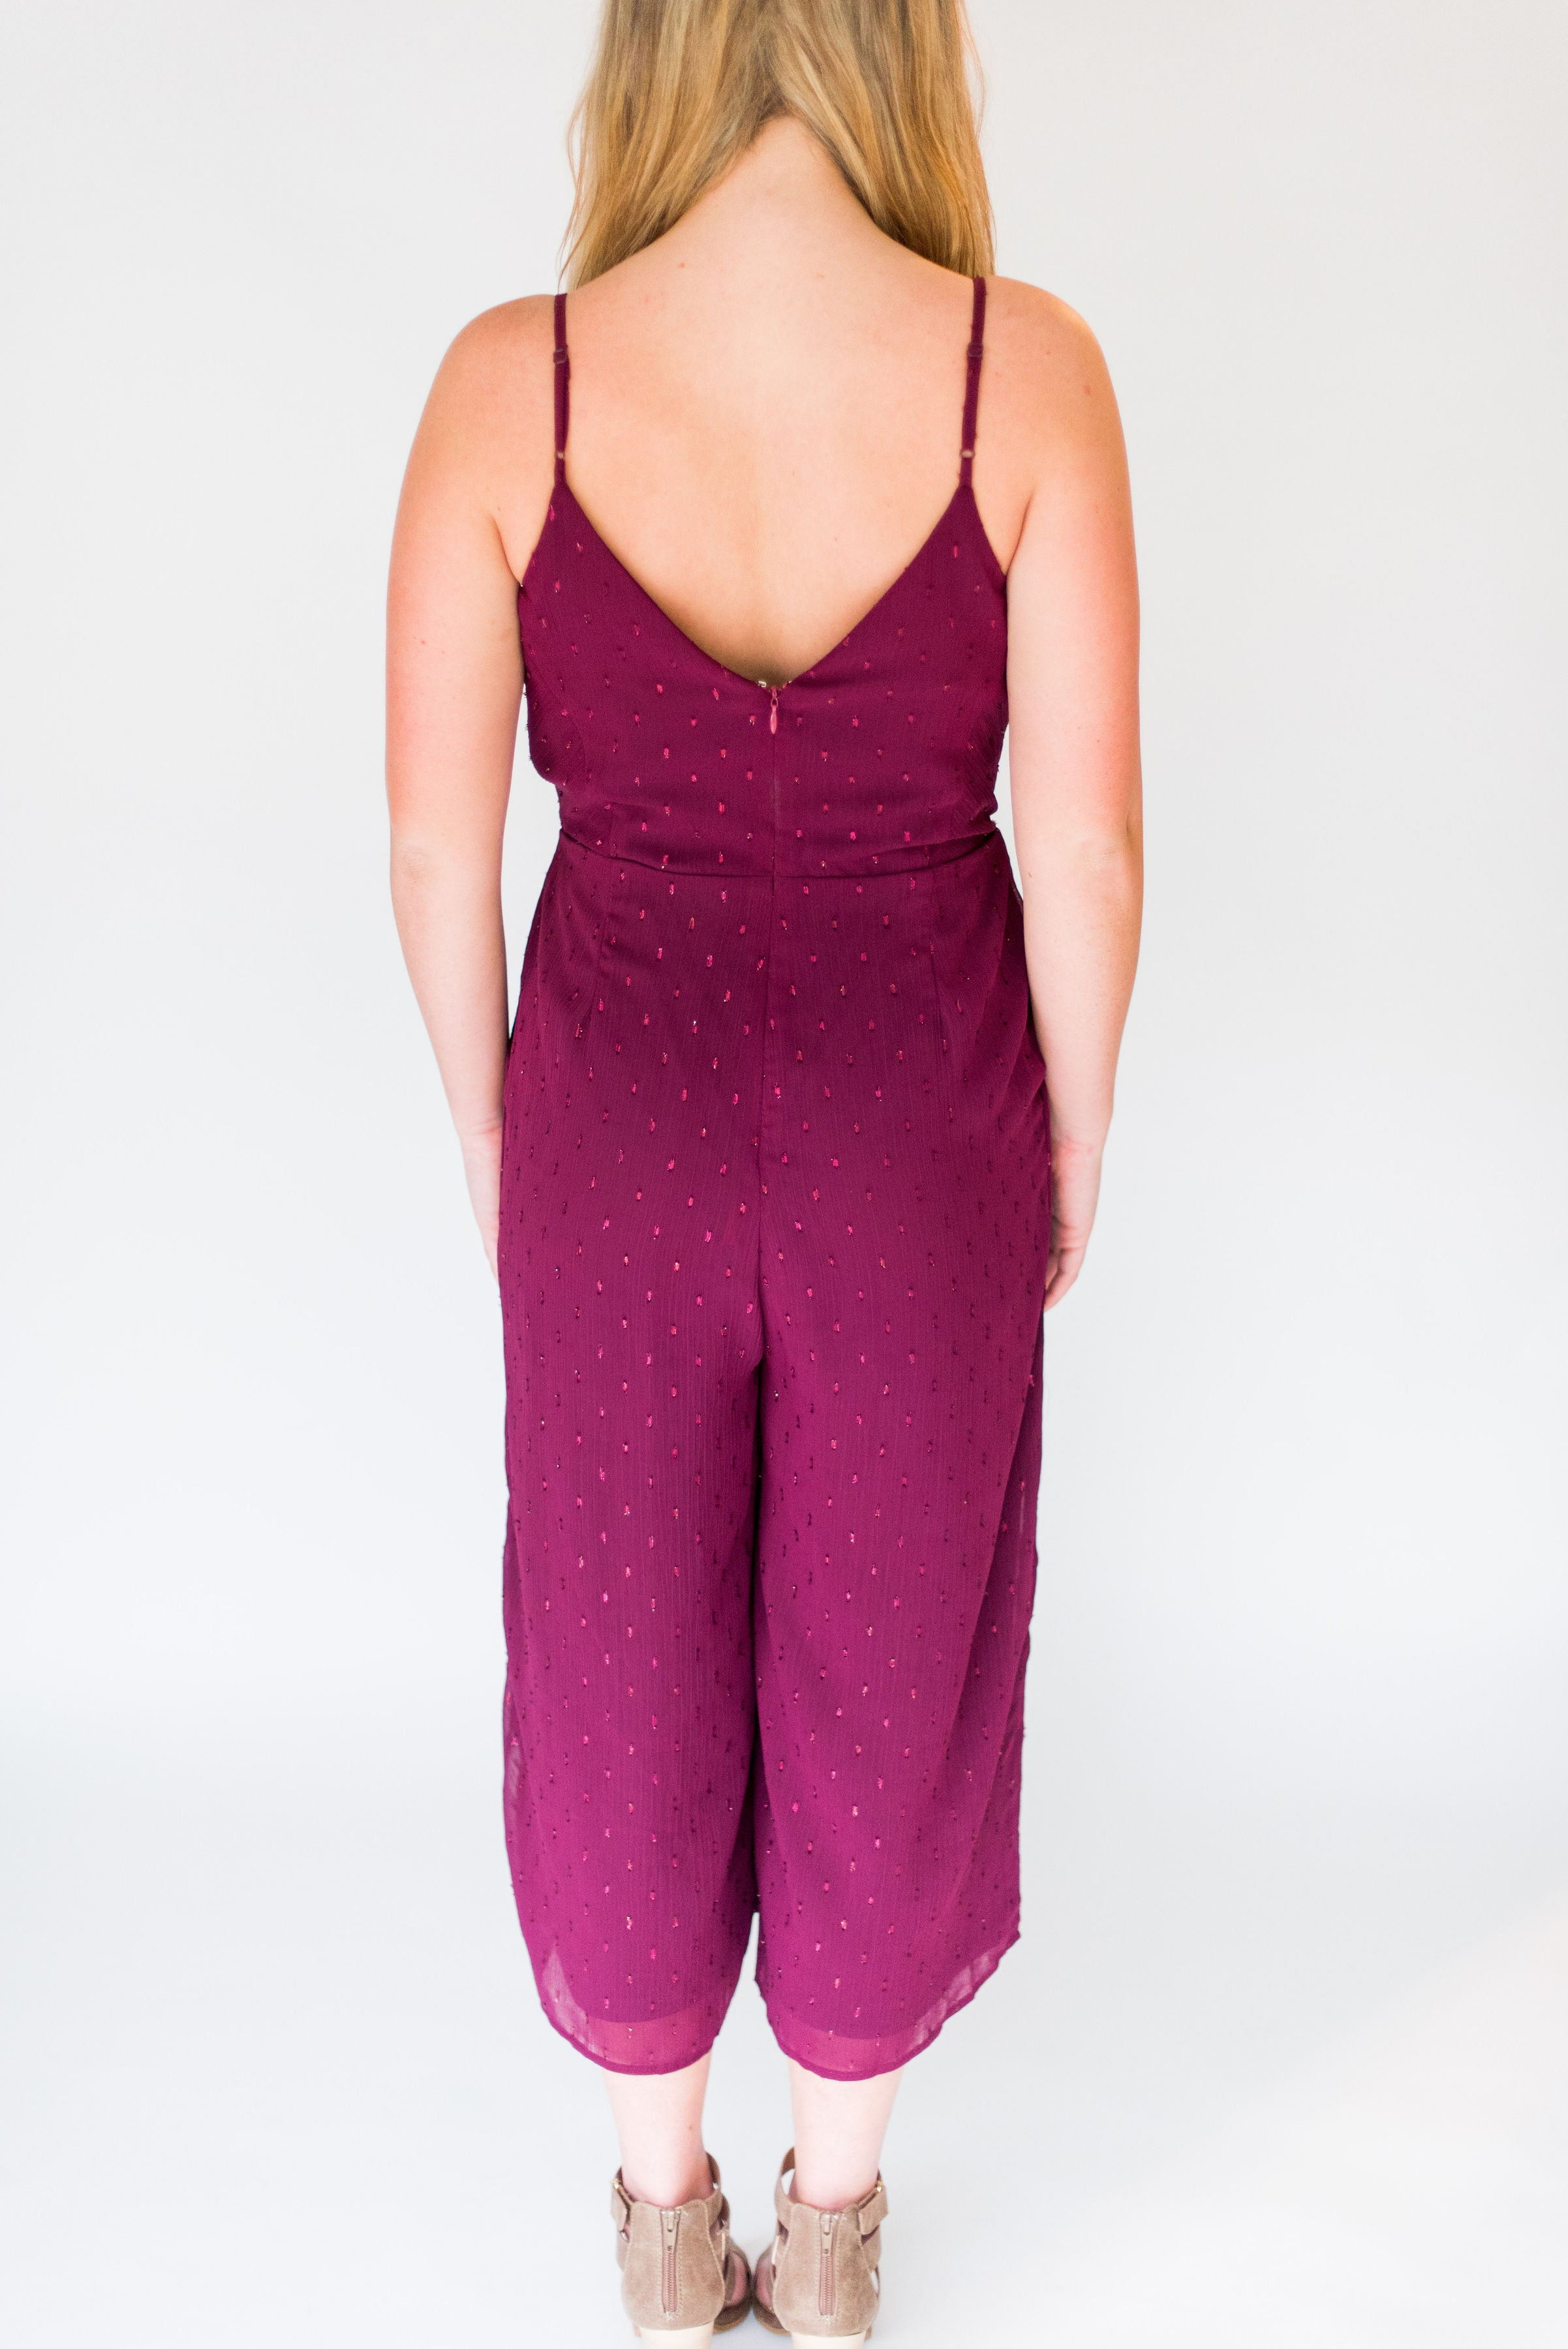 You Had Me at Merlot Cropped Jumpsuit with Front Tie:  Merlot